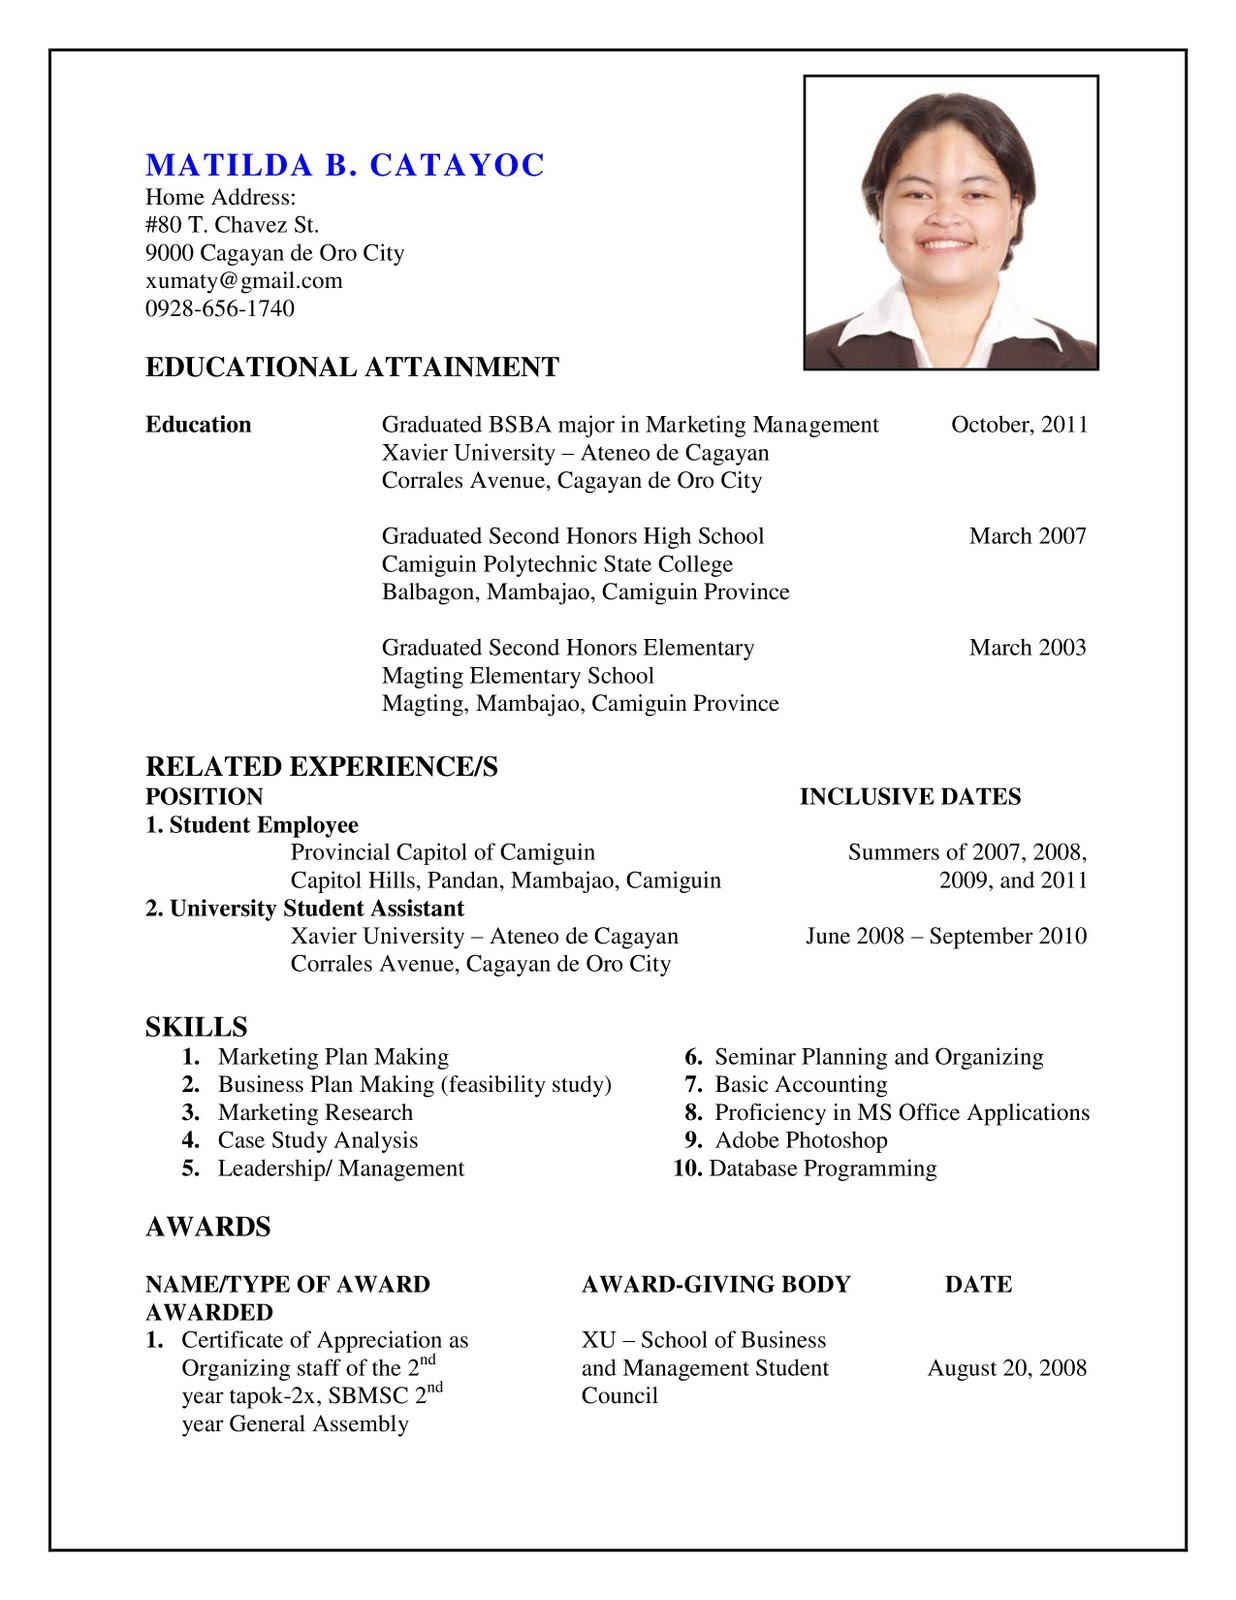 Best Resumes And Templates For Your Business   Ggec.co  I Need To Make A Resume